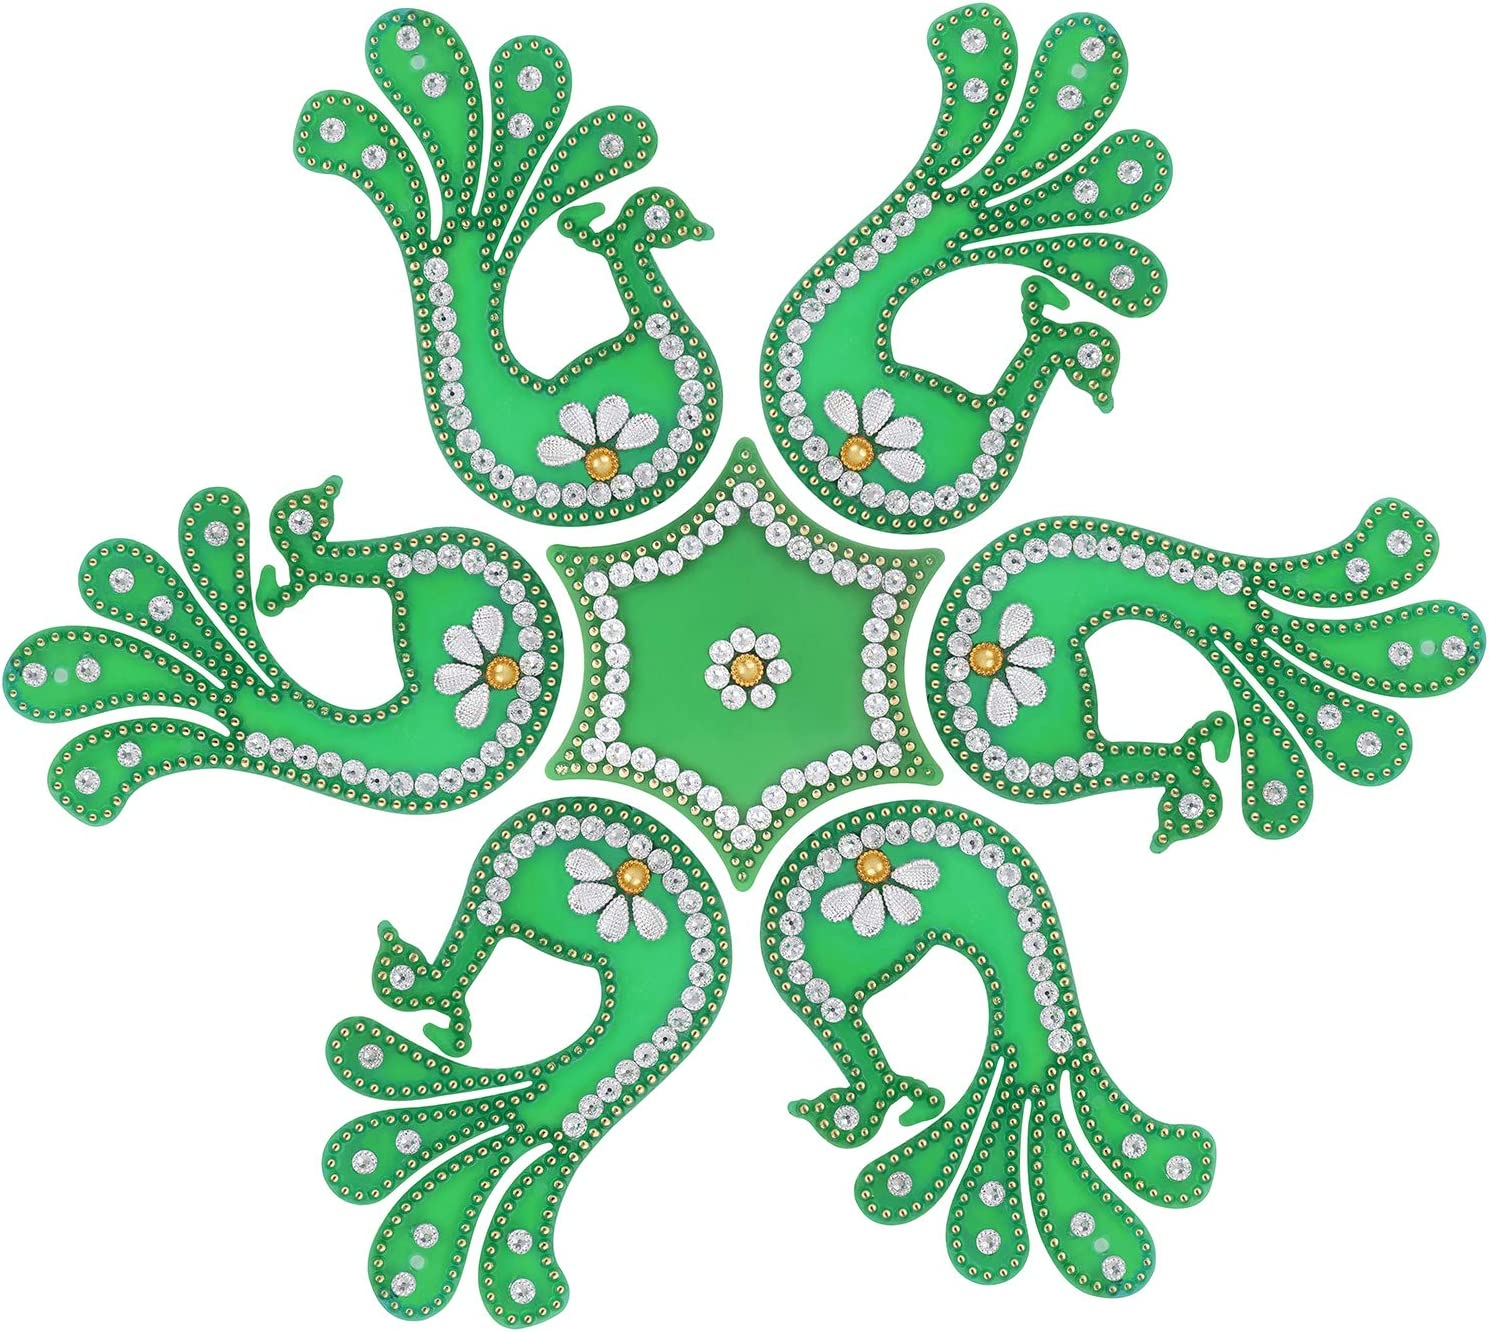 Aheli Peacock Shape Acrylic Rangoli for Home, Office, Diwali, Indian Festivals, Decoration, Traditional Studded with Faux Stones Floor Decorations (Green)